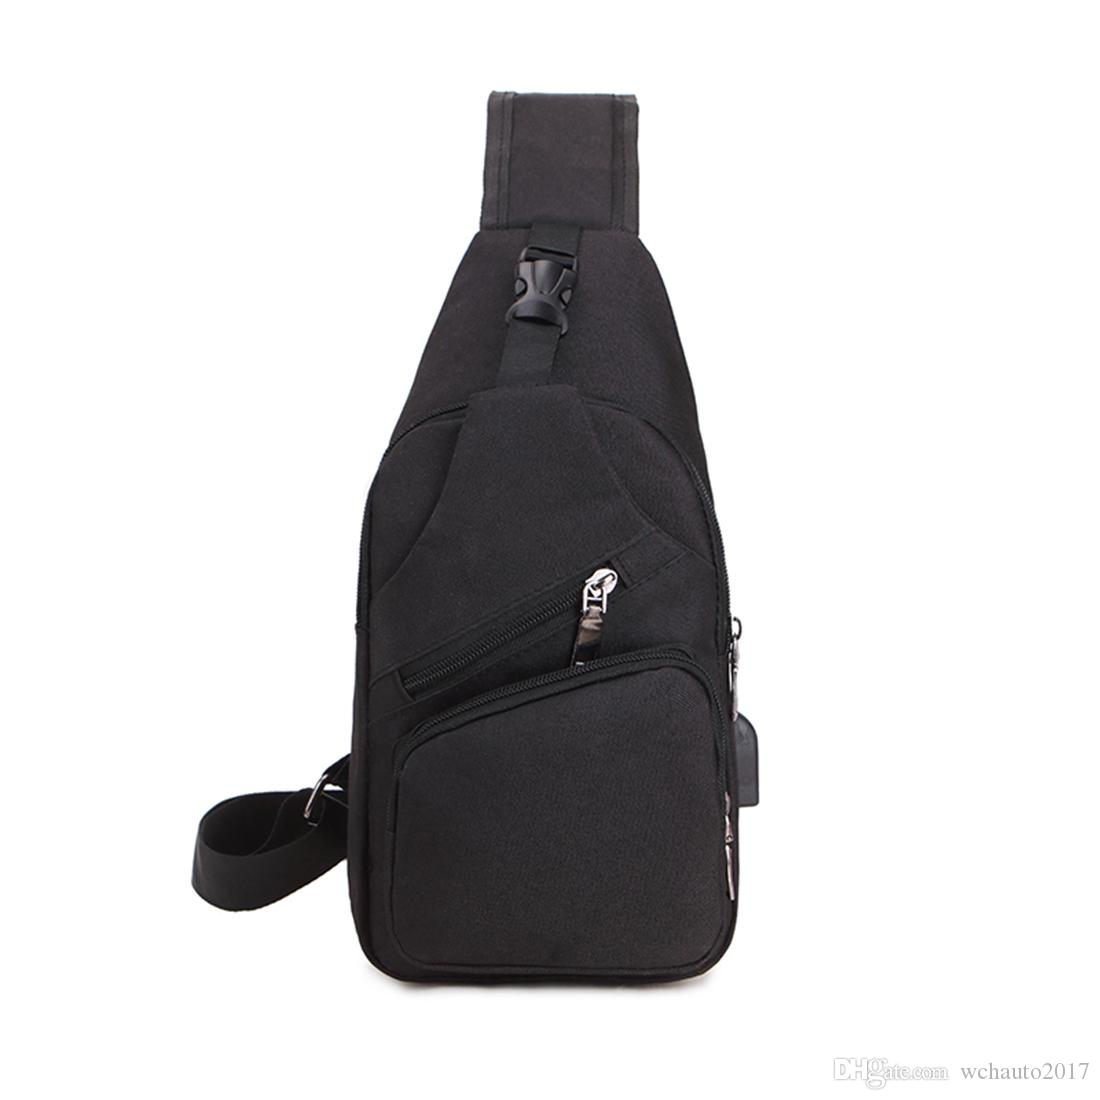 8b19ab1e59 2019 Sling Backpack Bag Newest Oxford Crossbody Bag Chest Shoulder Triangle  Backpack Sport Bag For Man Outdoor Running Travel Cycling Hiking From ...